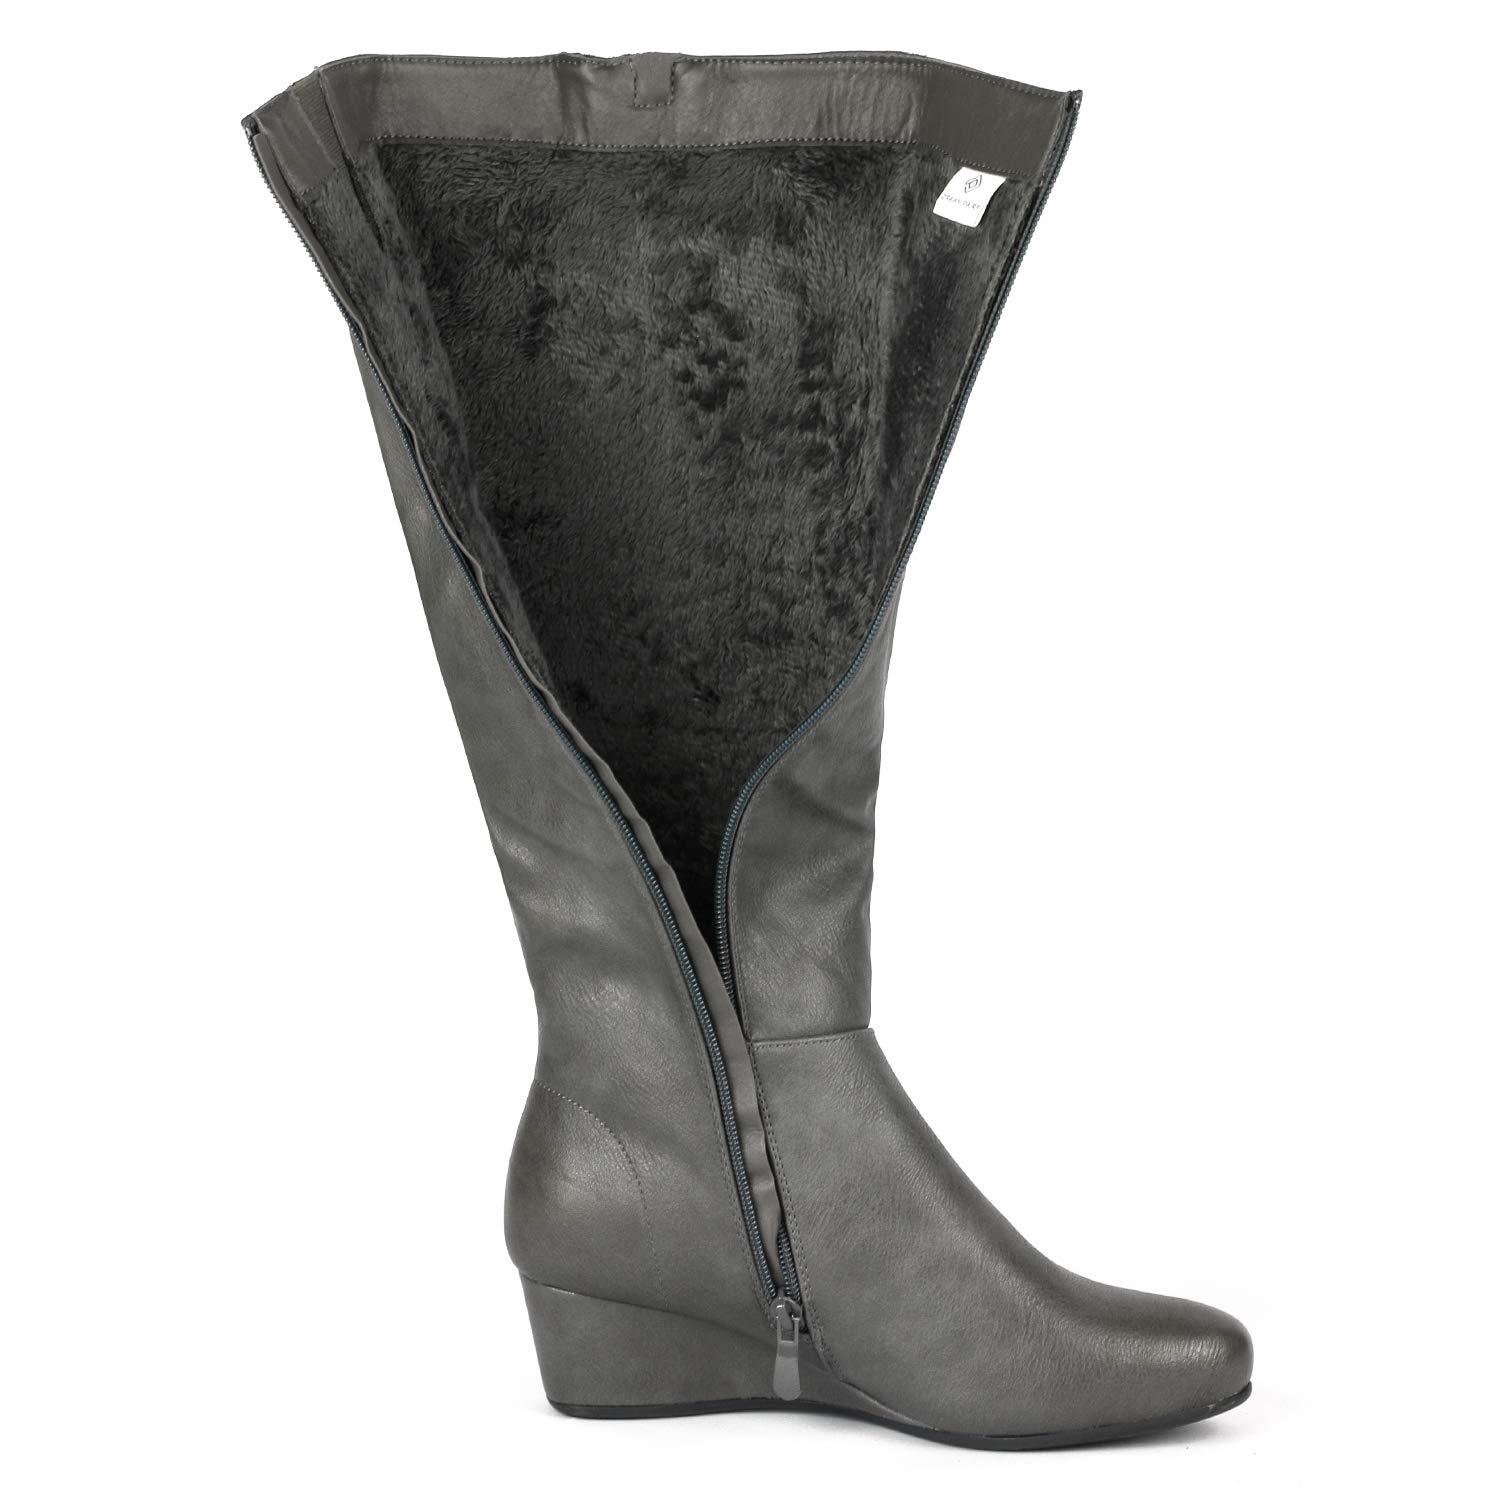 DREAM PAIRS Womens Low Wedge Knee High Winter Fashion Boots